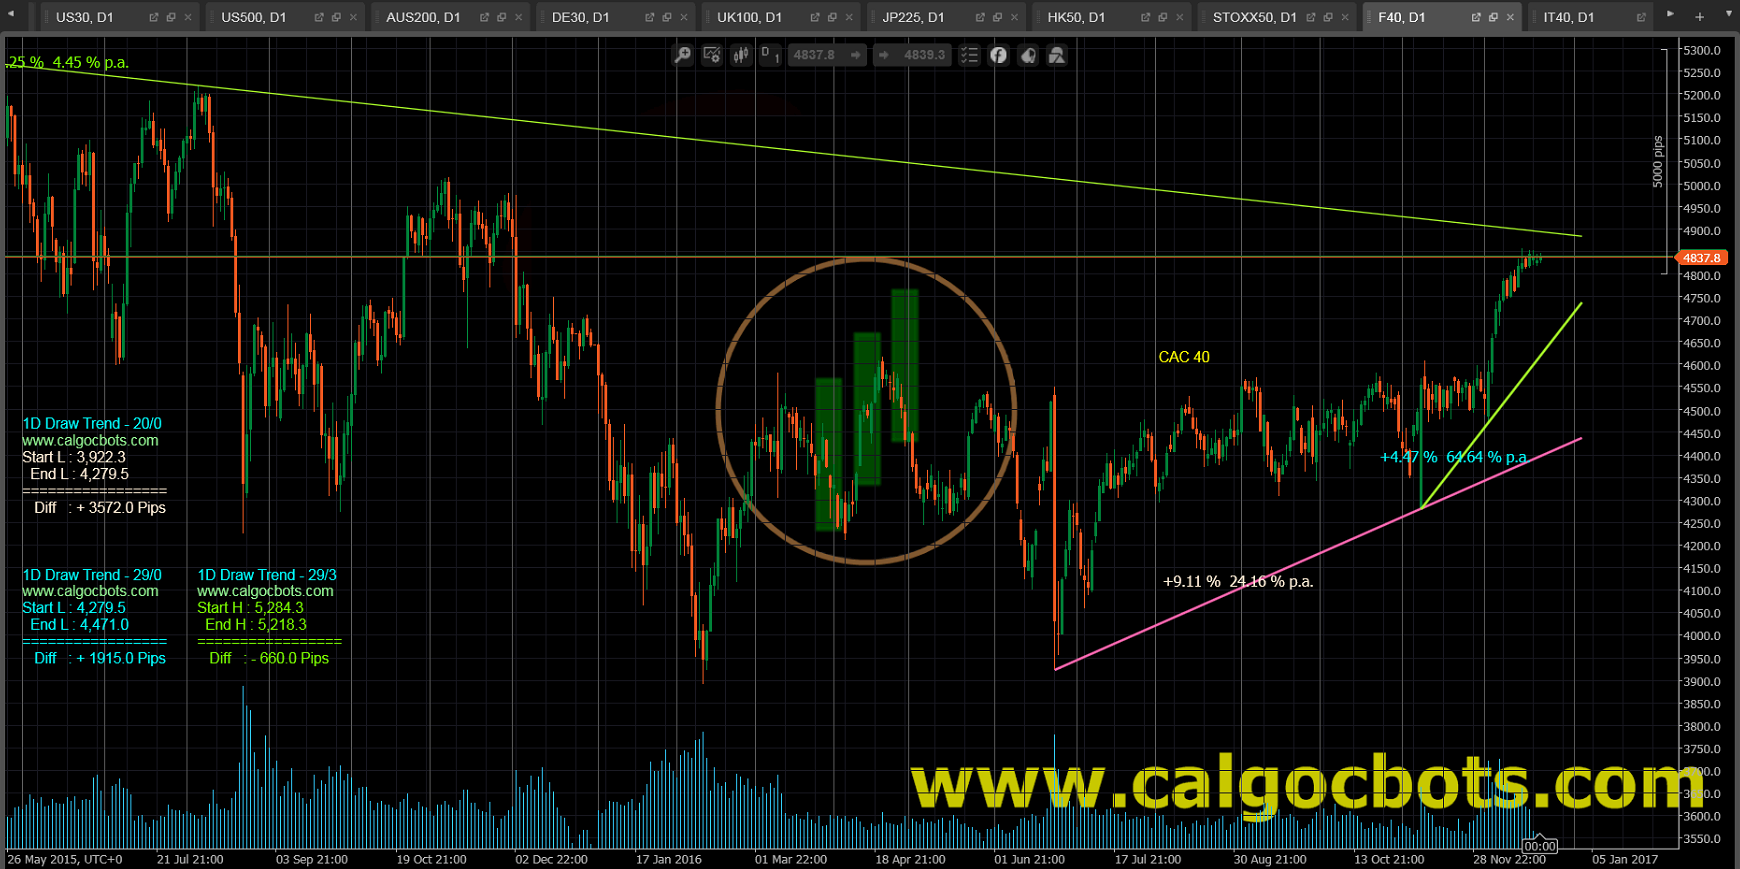 1D Draw Trend - cAlgo and cTrader Indicator - CAC 40 Index French stock market index Daily Chart - 003